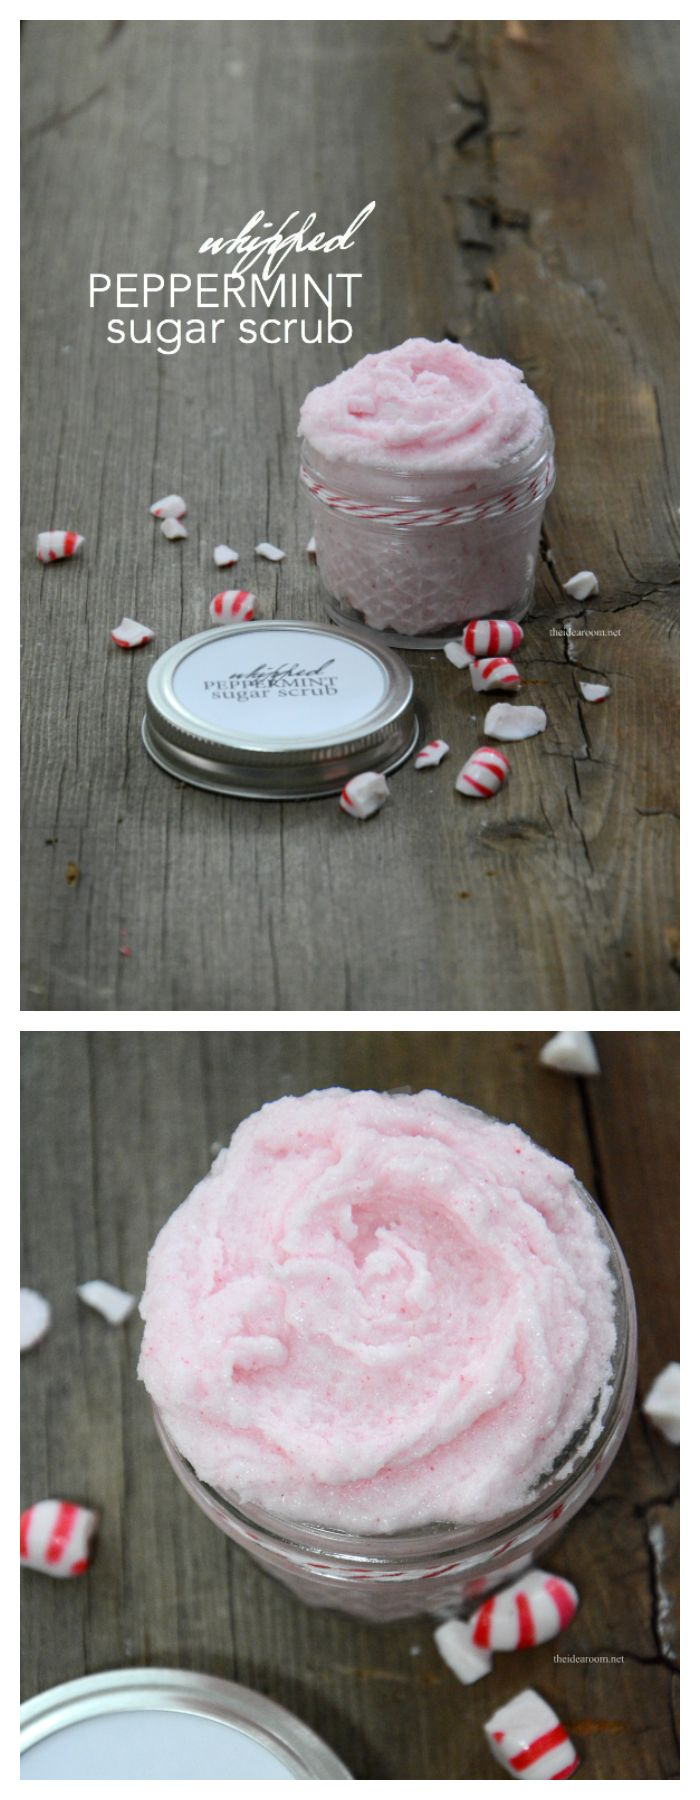 Whipped Peppermint Sugar Scrub pin - can use any essential oil and color